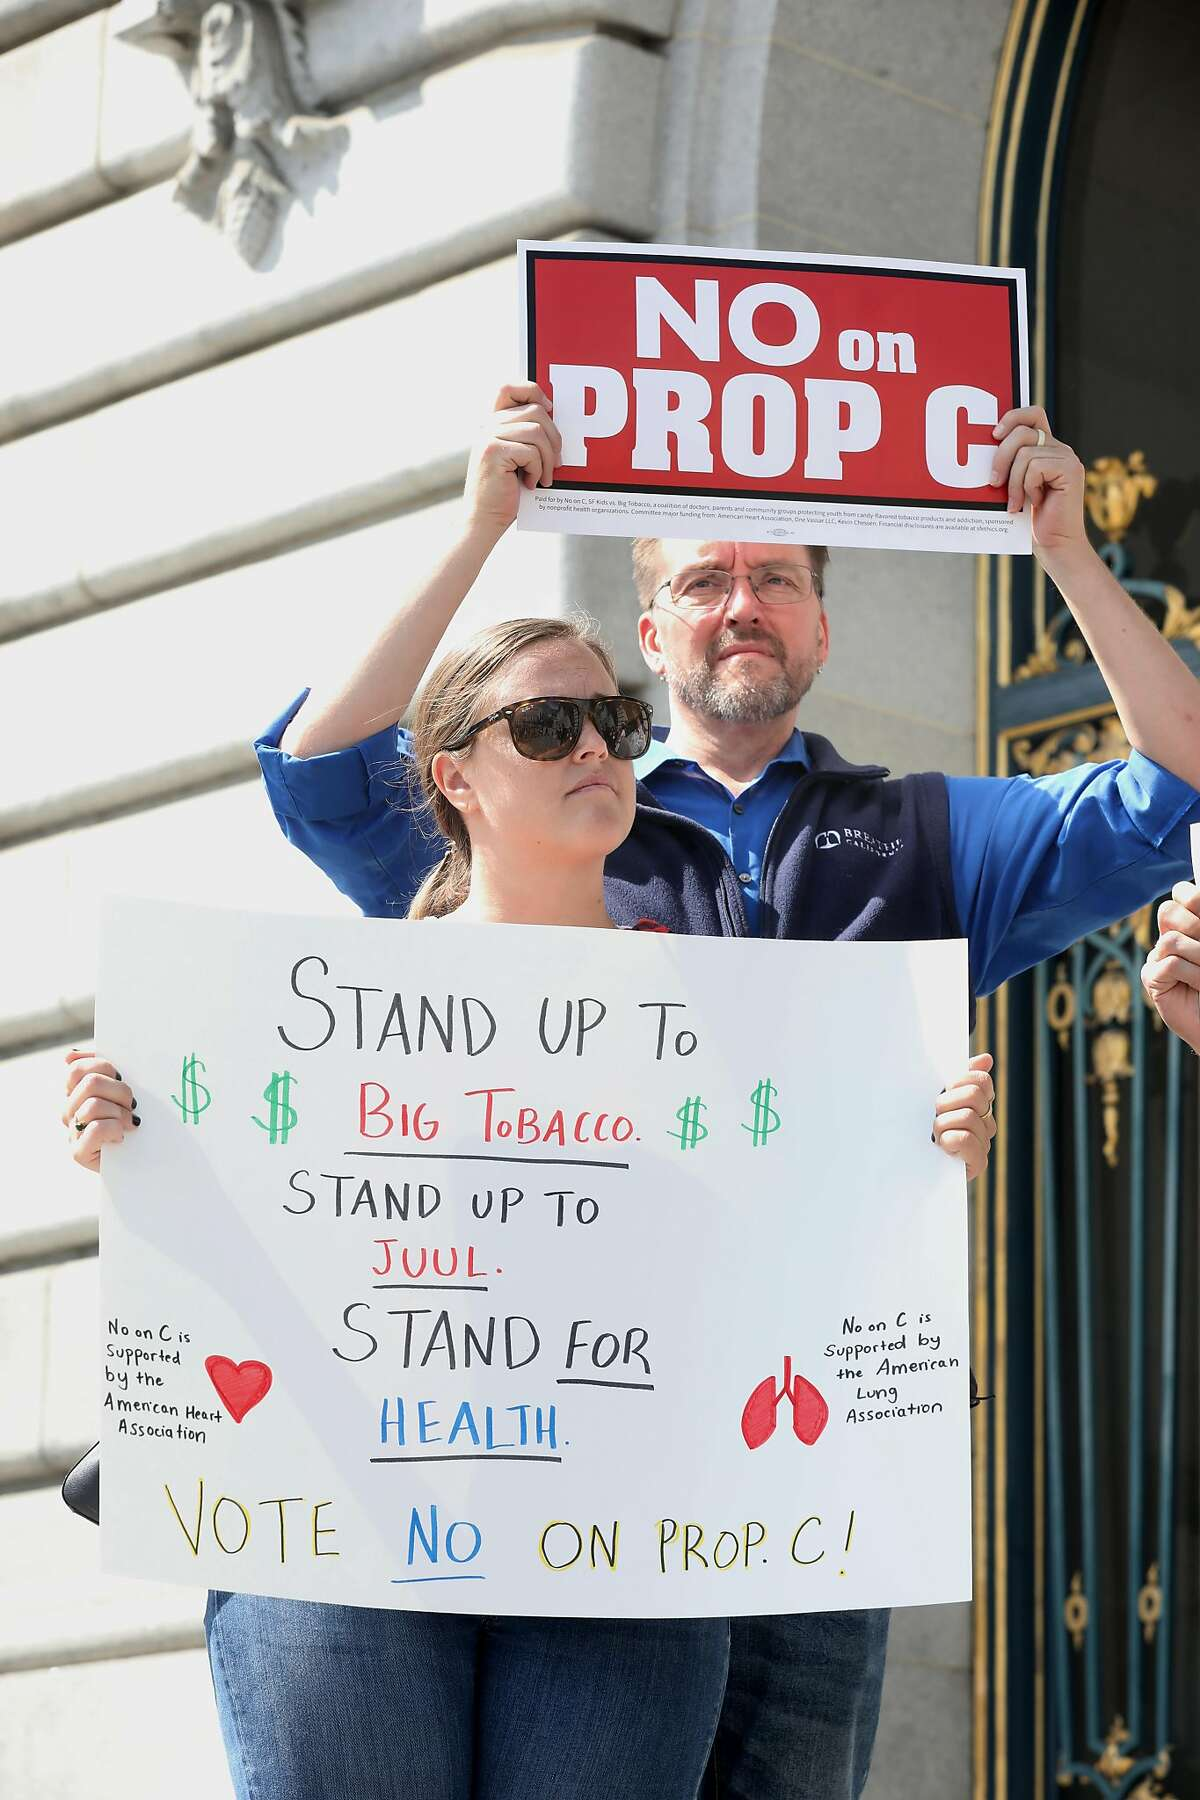 Jennifer Smutz (front) from the American Heart association and Brian Sawyer (back) from Breathe California protest at the SF Kids vs Big Tobacco rally, the public health groups opposing Juul�s ballot initiative called The No on C campaign, as they kick-off an event outside City Hall on Wednesday, Sept. 4, 2019 in San Francisco, Calif.